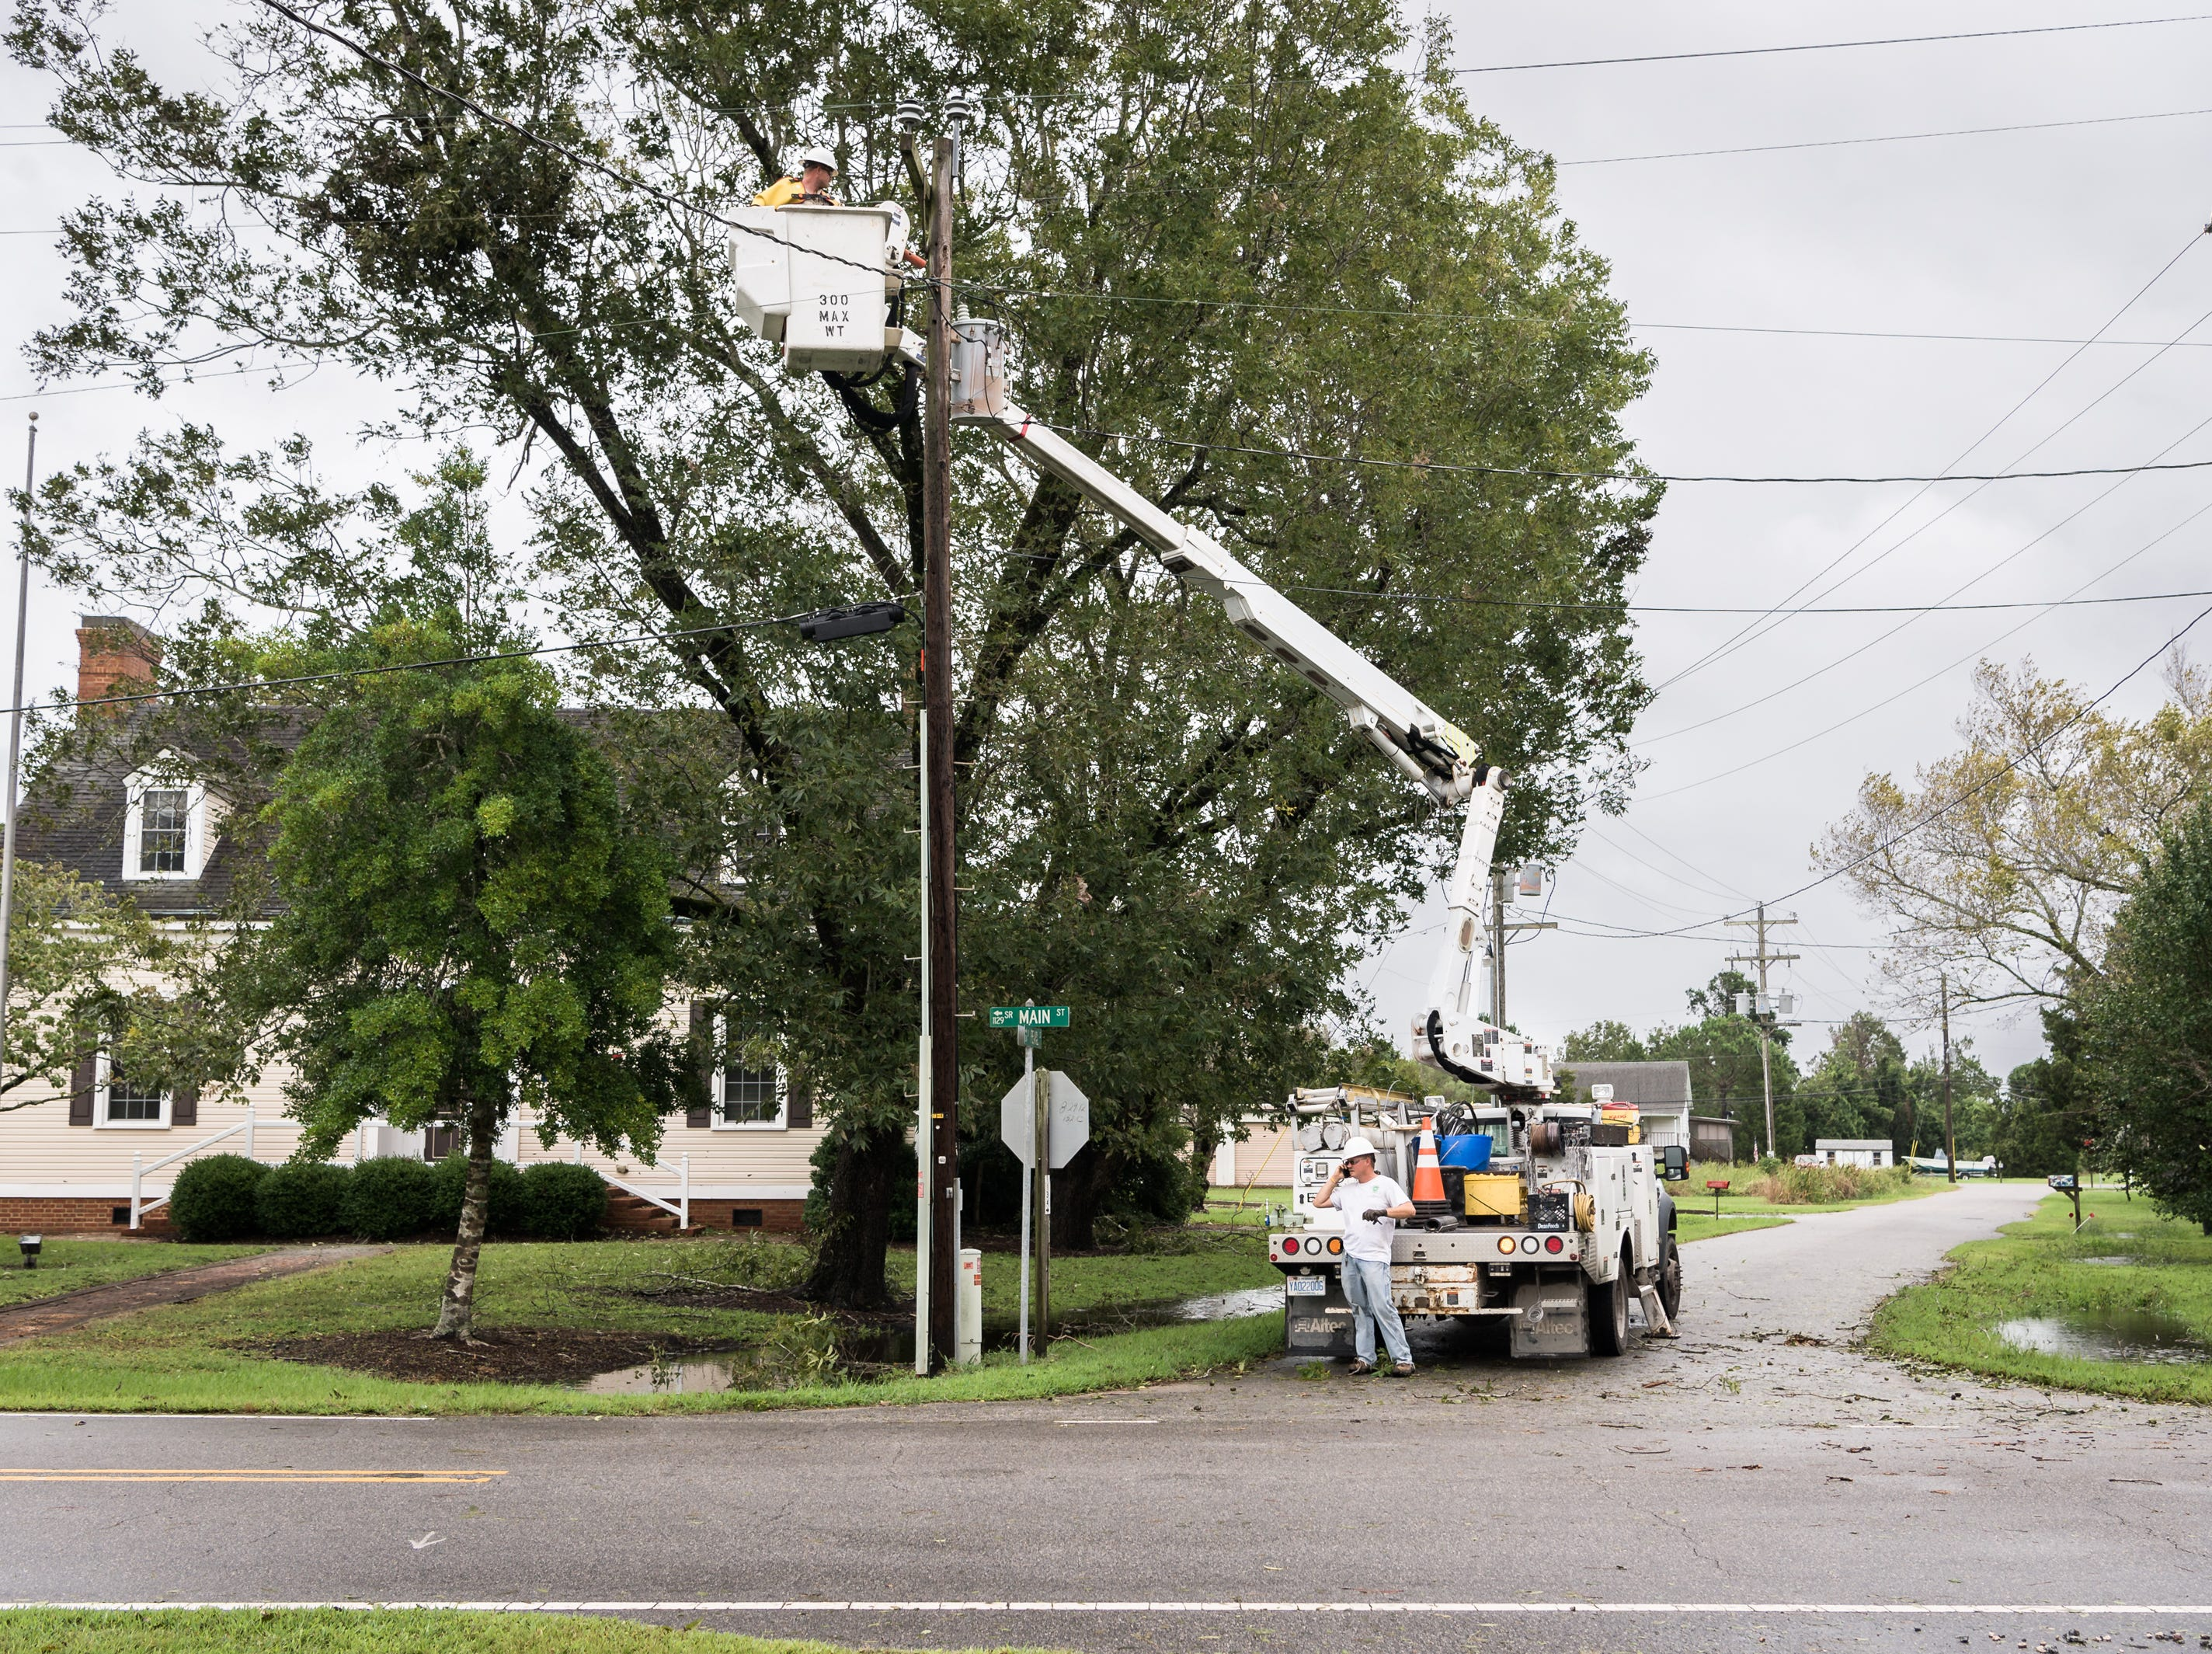 Utility workers from Tideland EMC make a repair to a utility pole on Main Street in Swan Quarter, N.C Sept. 14, 2018, after Hurricane Florence made landfall in Wilmington, N.C.